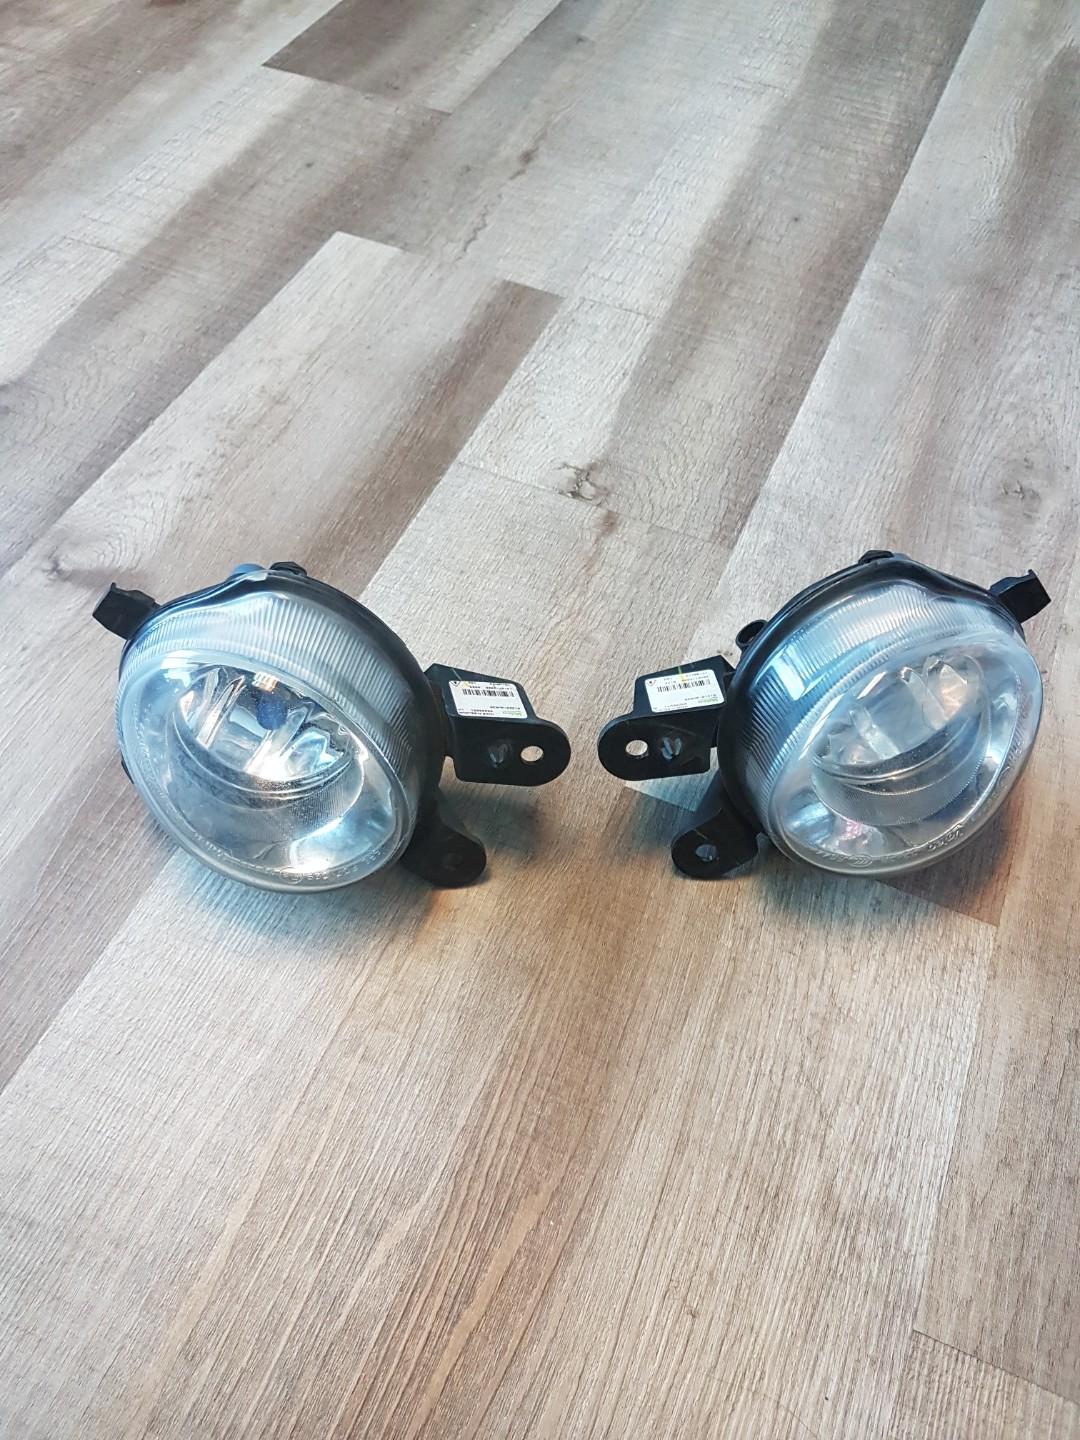 Original 2009 Lexus IS250 convertible fog lamps.